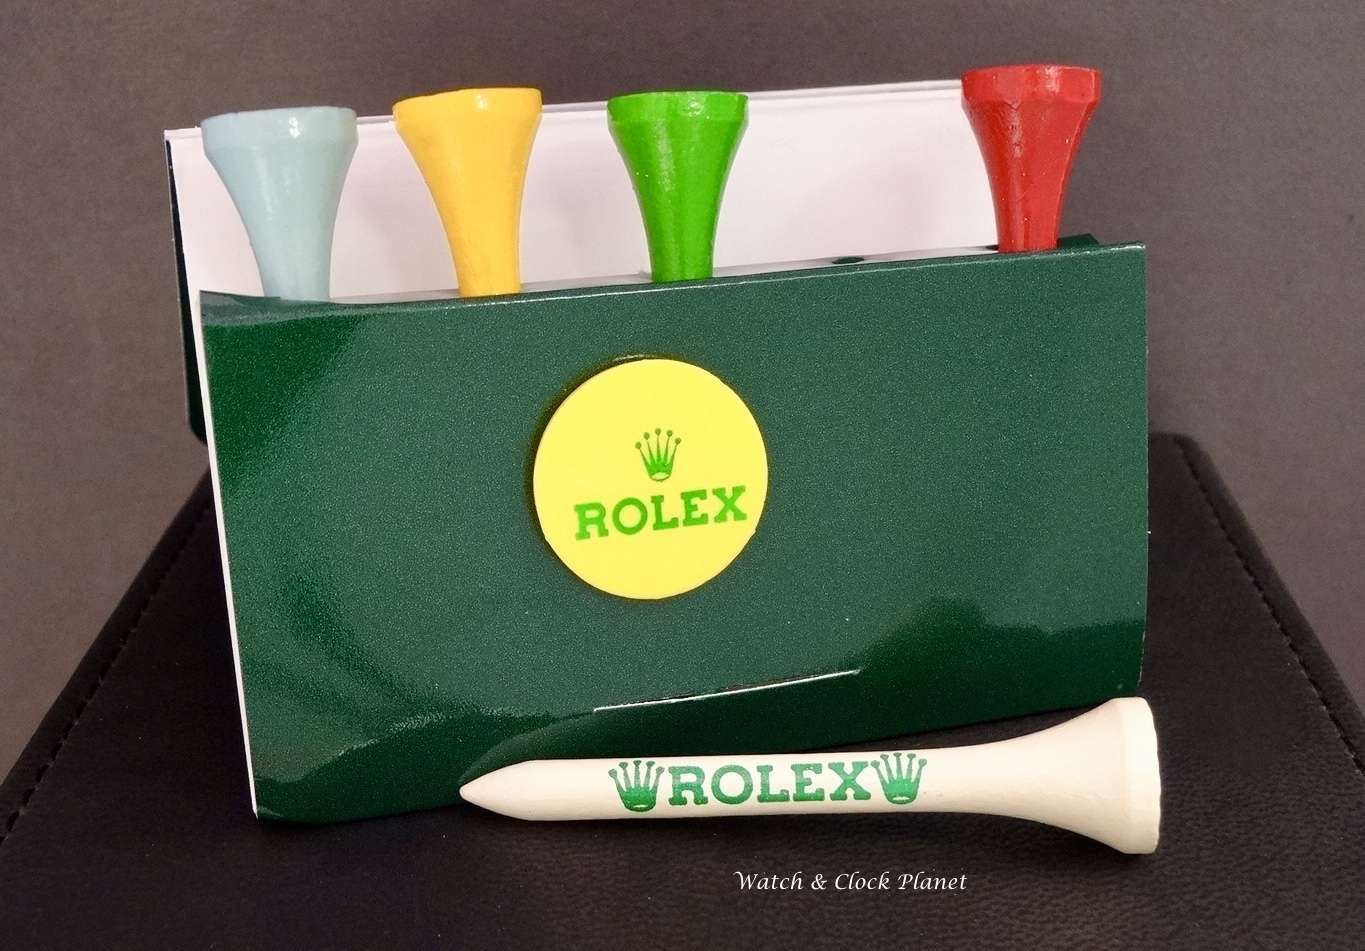 Rolex Original golf tees - 10 packs of 5 golf tees and marker